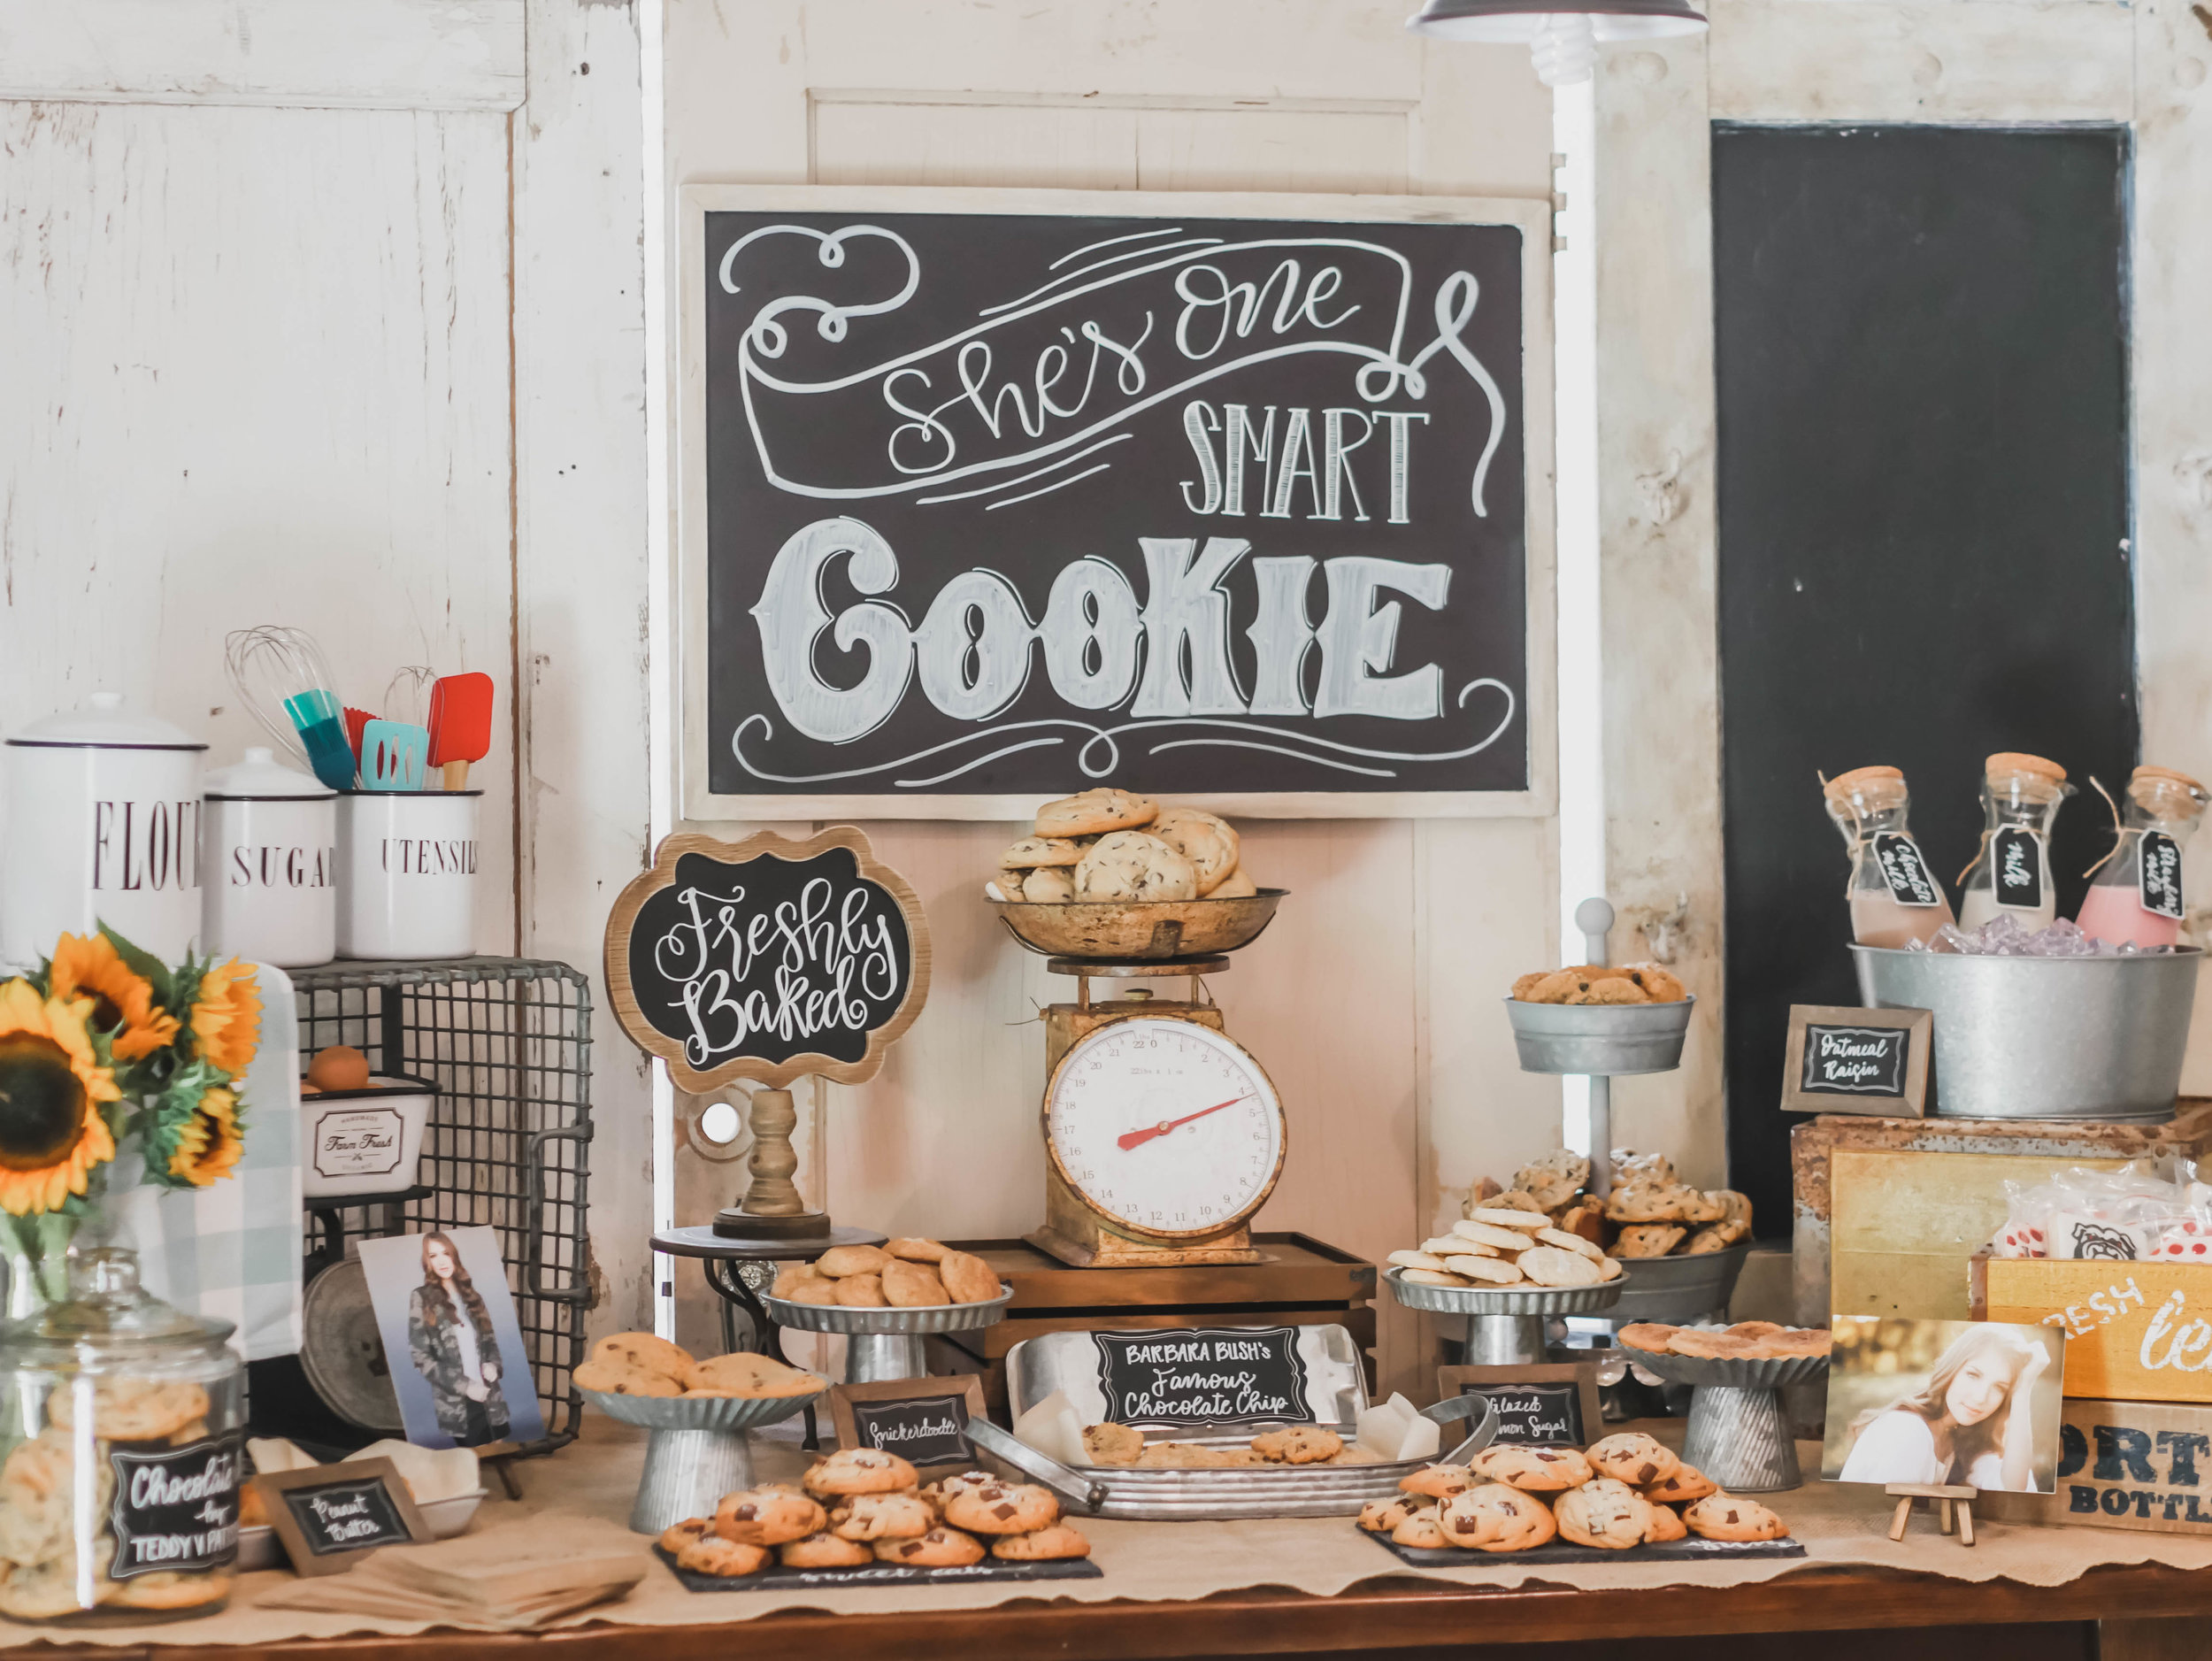 Hand lettered chalkboard signs were the perfect party decoration detail at this One Smart Cookie Graduation Party with vintage and rustic touches. Created by Mint Event Design www.minteventdesign.com #graduationparty #graduationpartyideas #partyideas #rusticpartyideas #partyinspiration #dessertbar #desserttable #chalkboardsigns